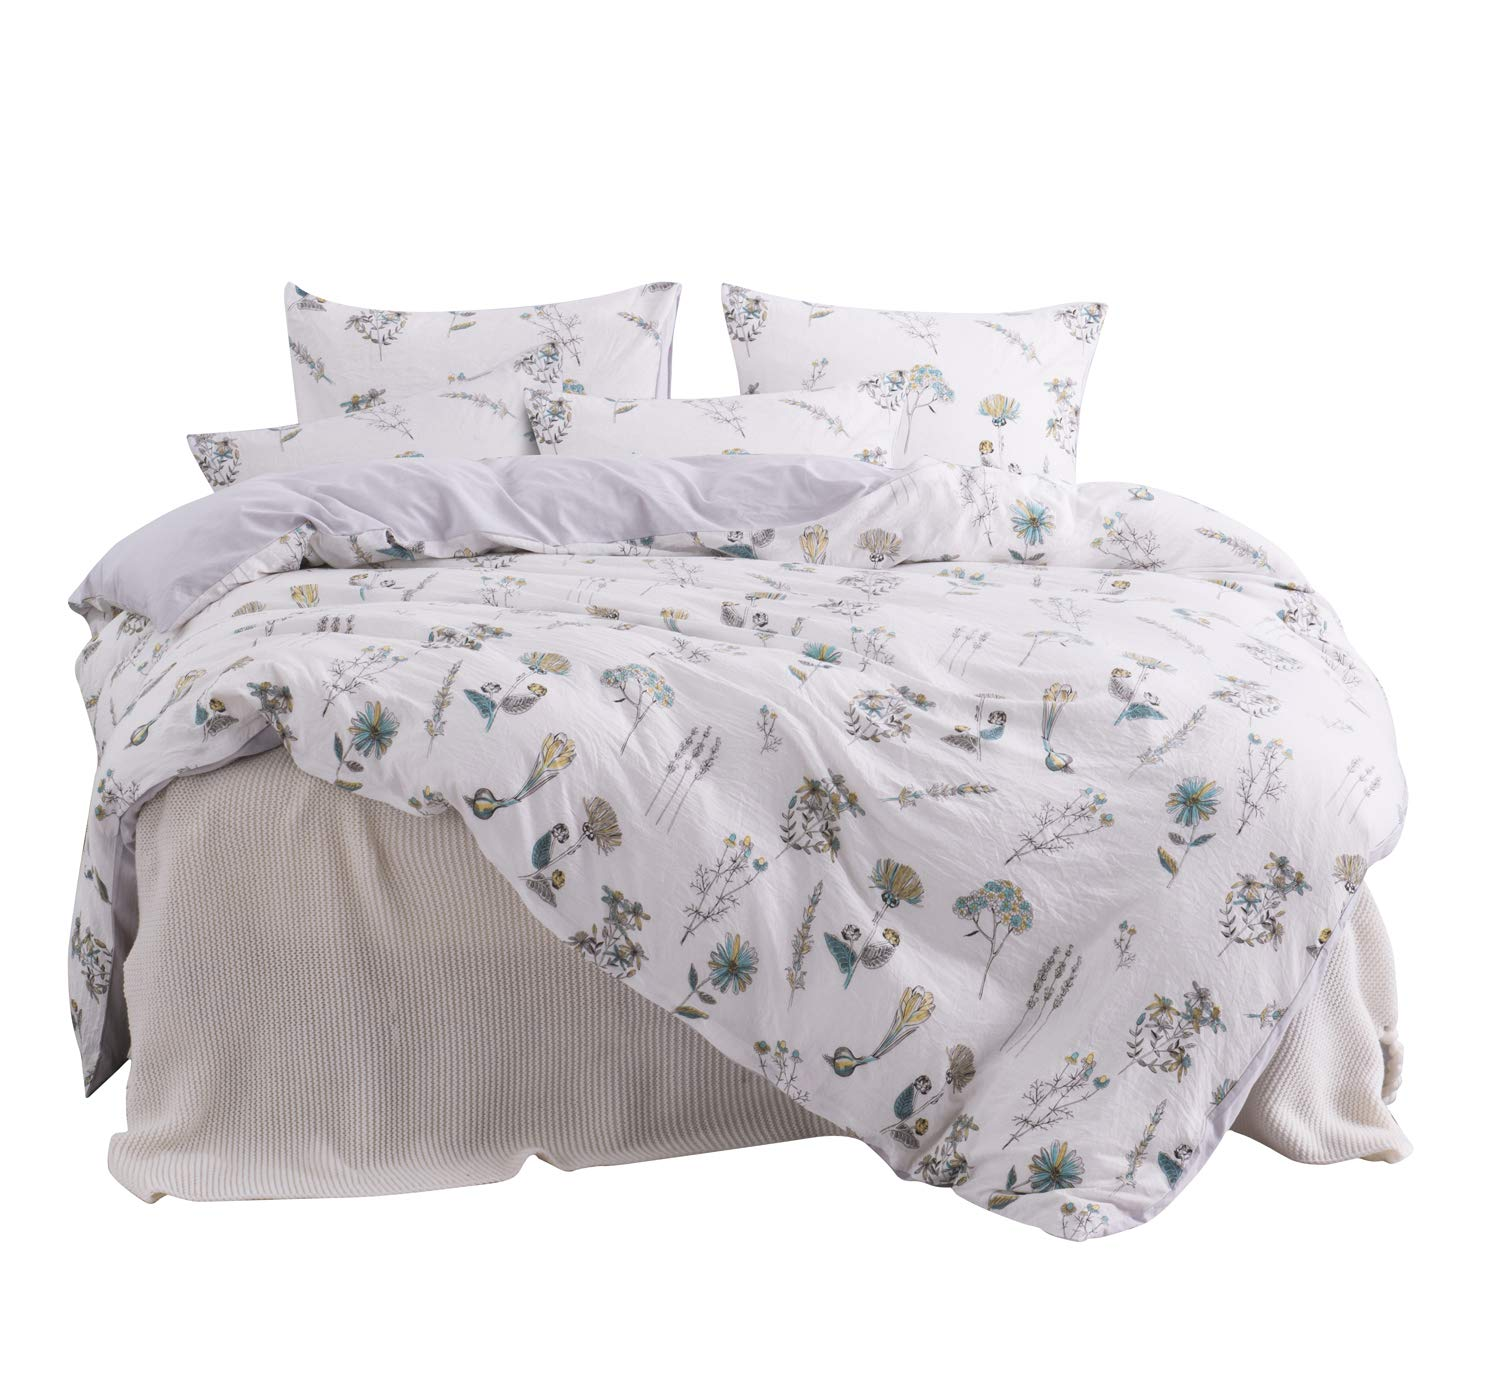 ughome Queen Flower Duvet Cover Set, Supper Soft Lightweight White Floral Hotel Bedding Sets Washed Cotton Technology Comforter Cover with 2 Pillowcases and 1 Duvet Cover(Queen, White)